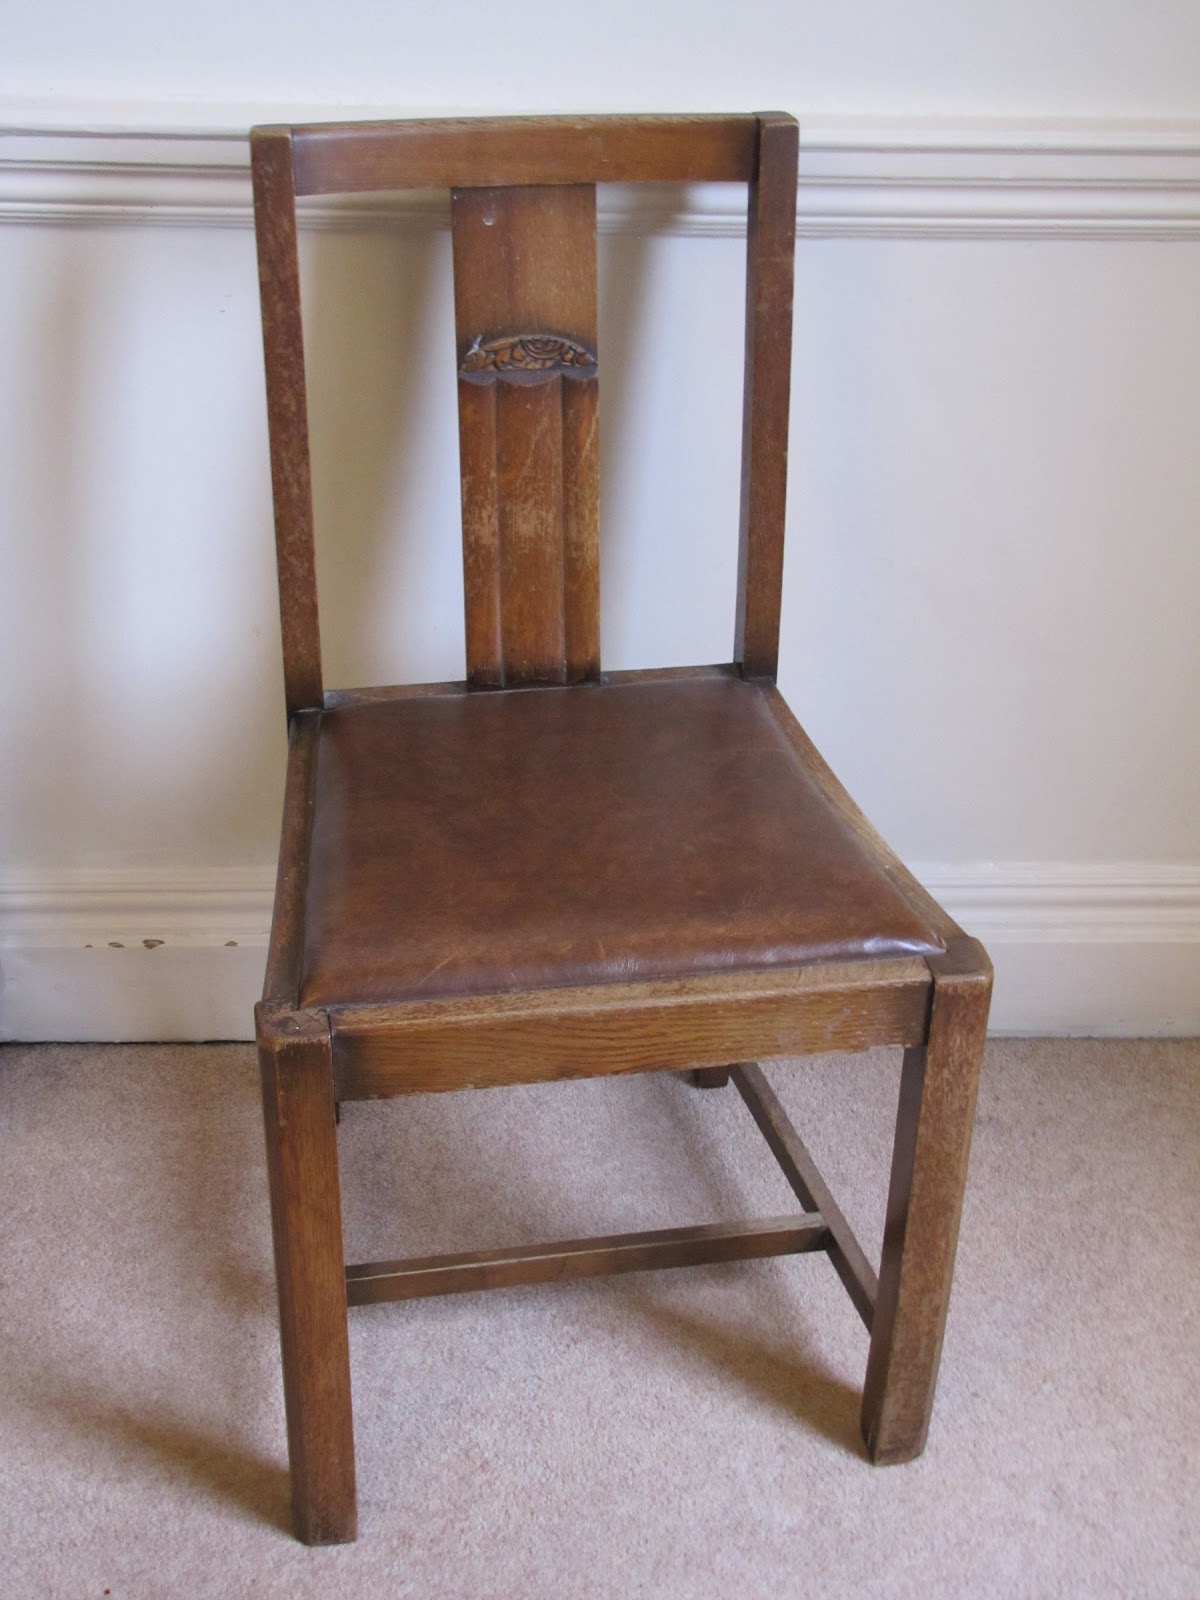 s dining chair crate and barrel rocking repurposed renewed 1920s 30s deco style oak